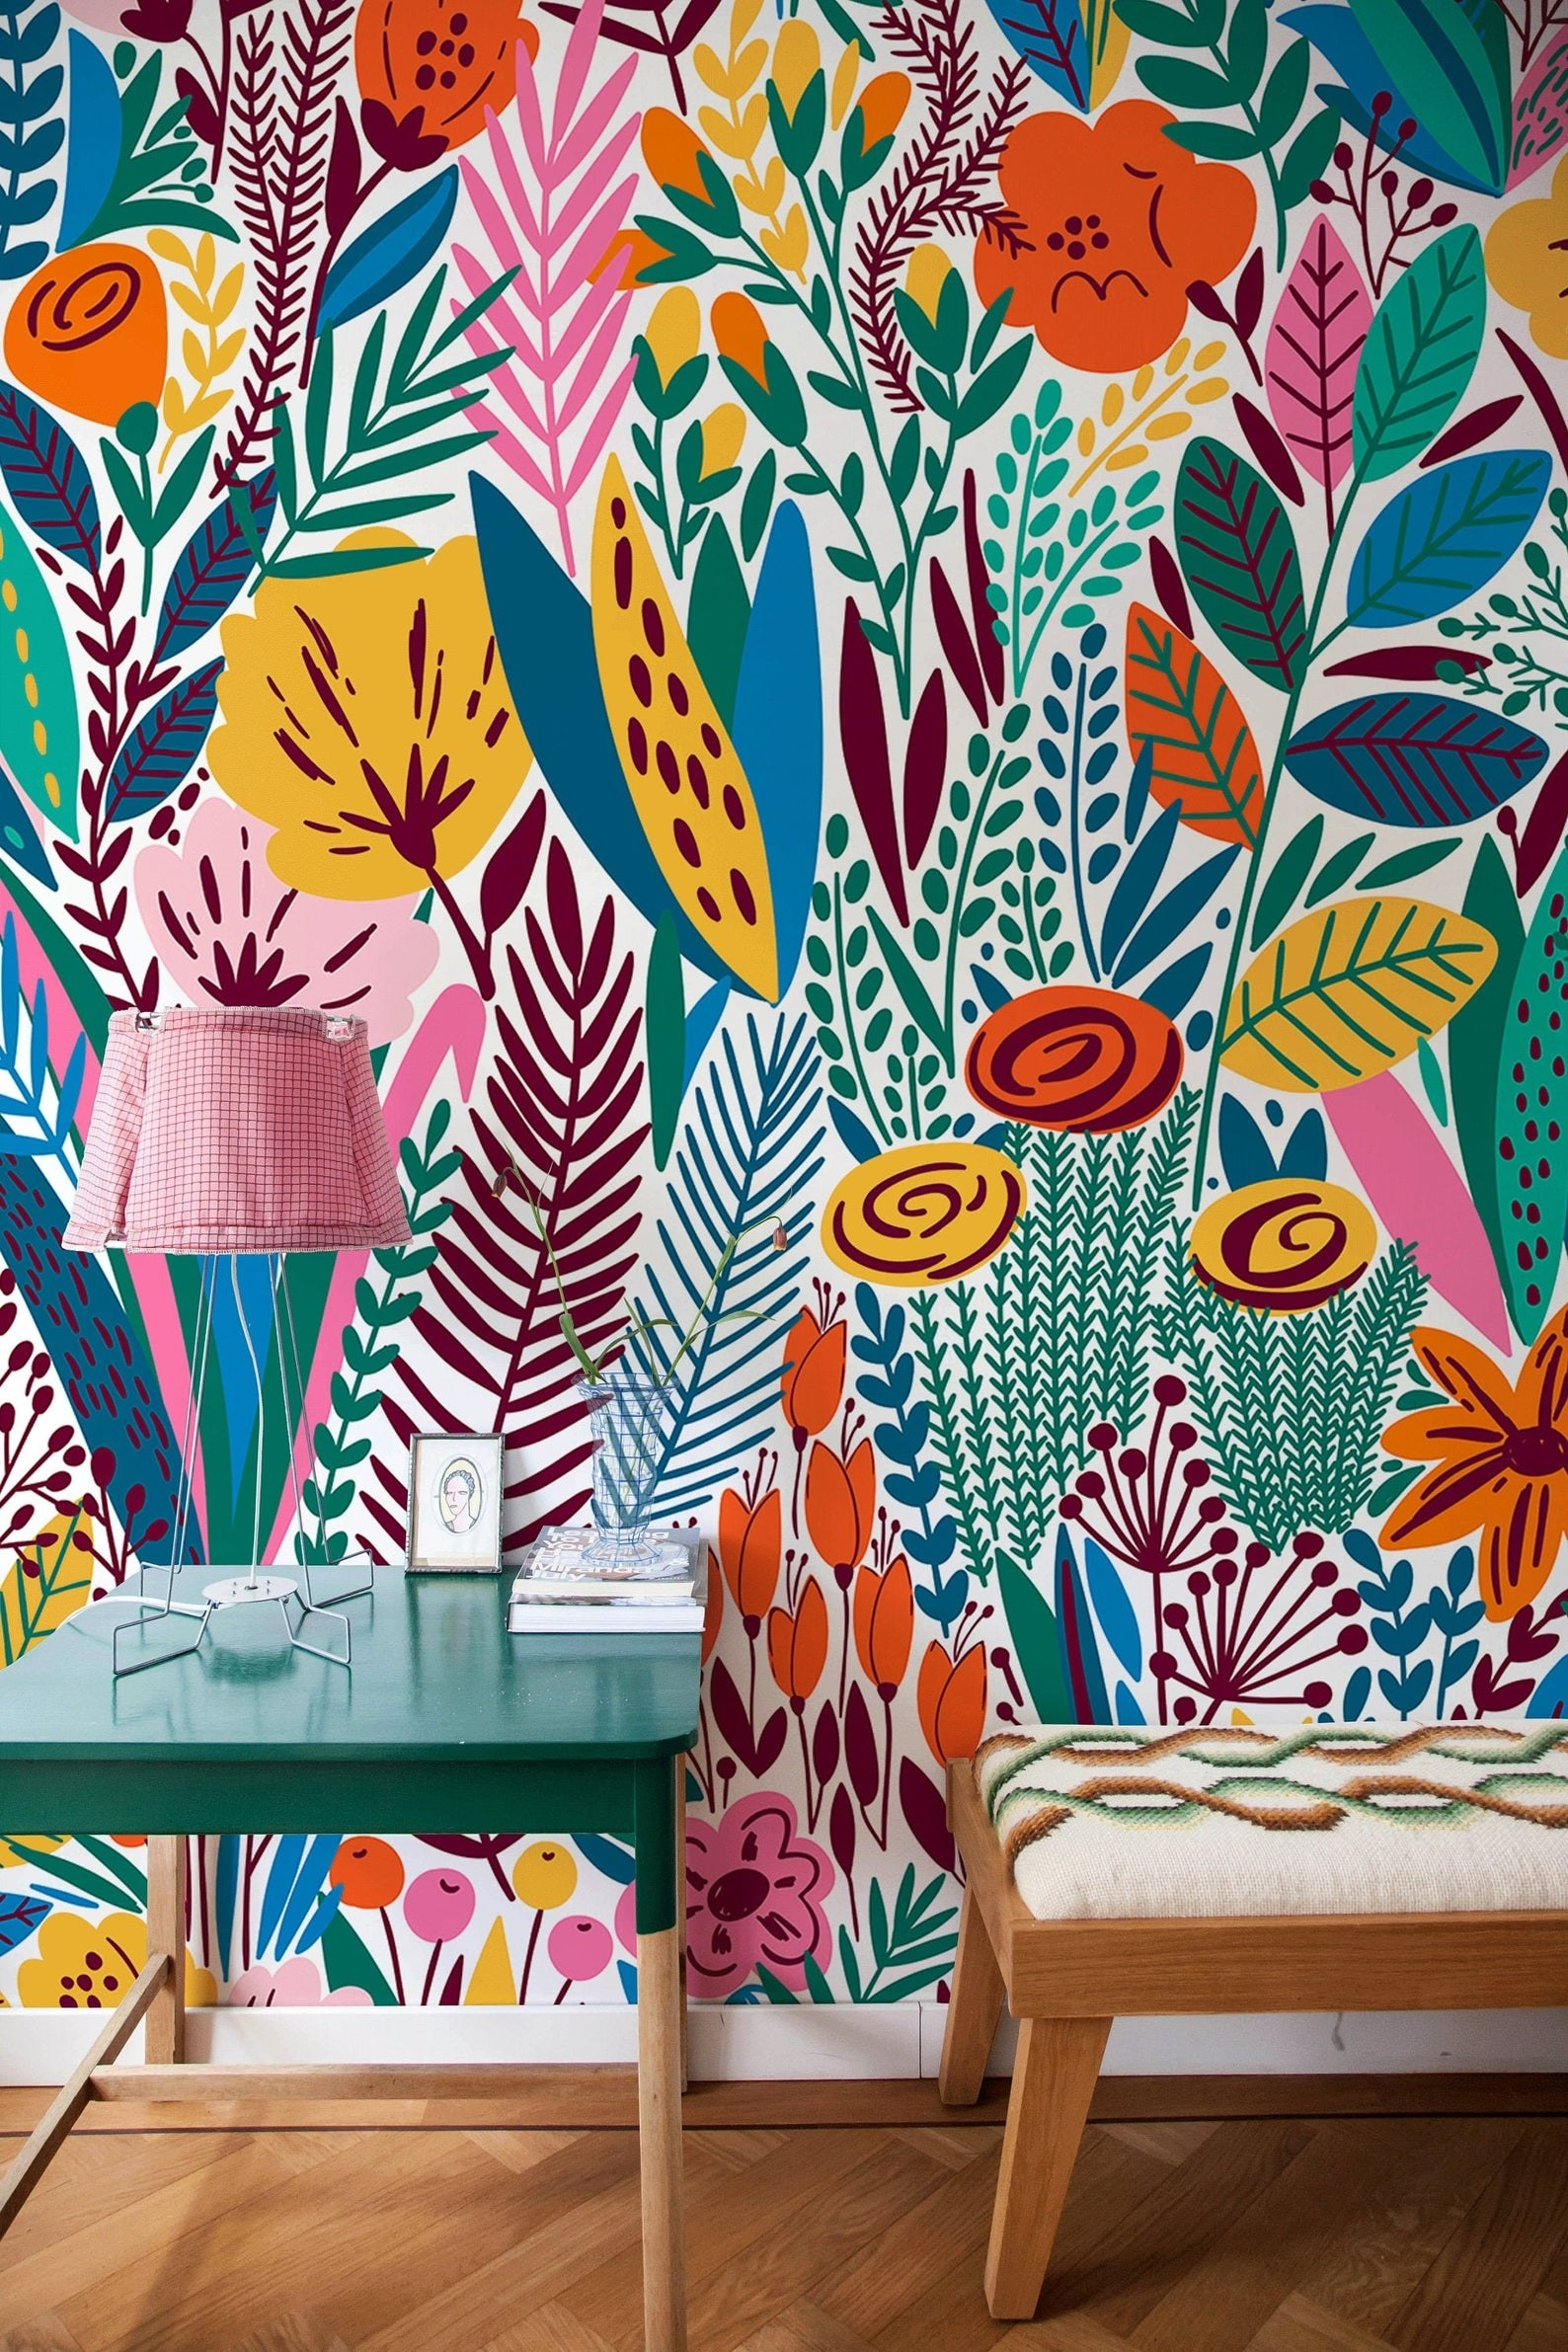 Bright colorful floral wallpaper